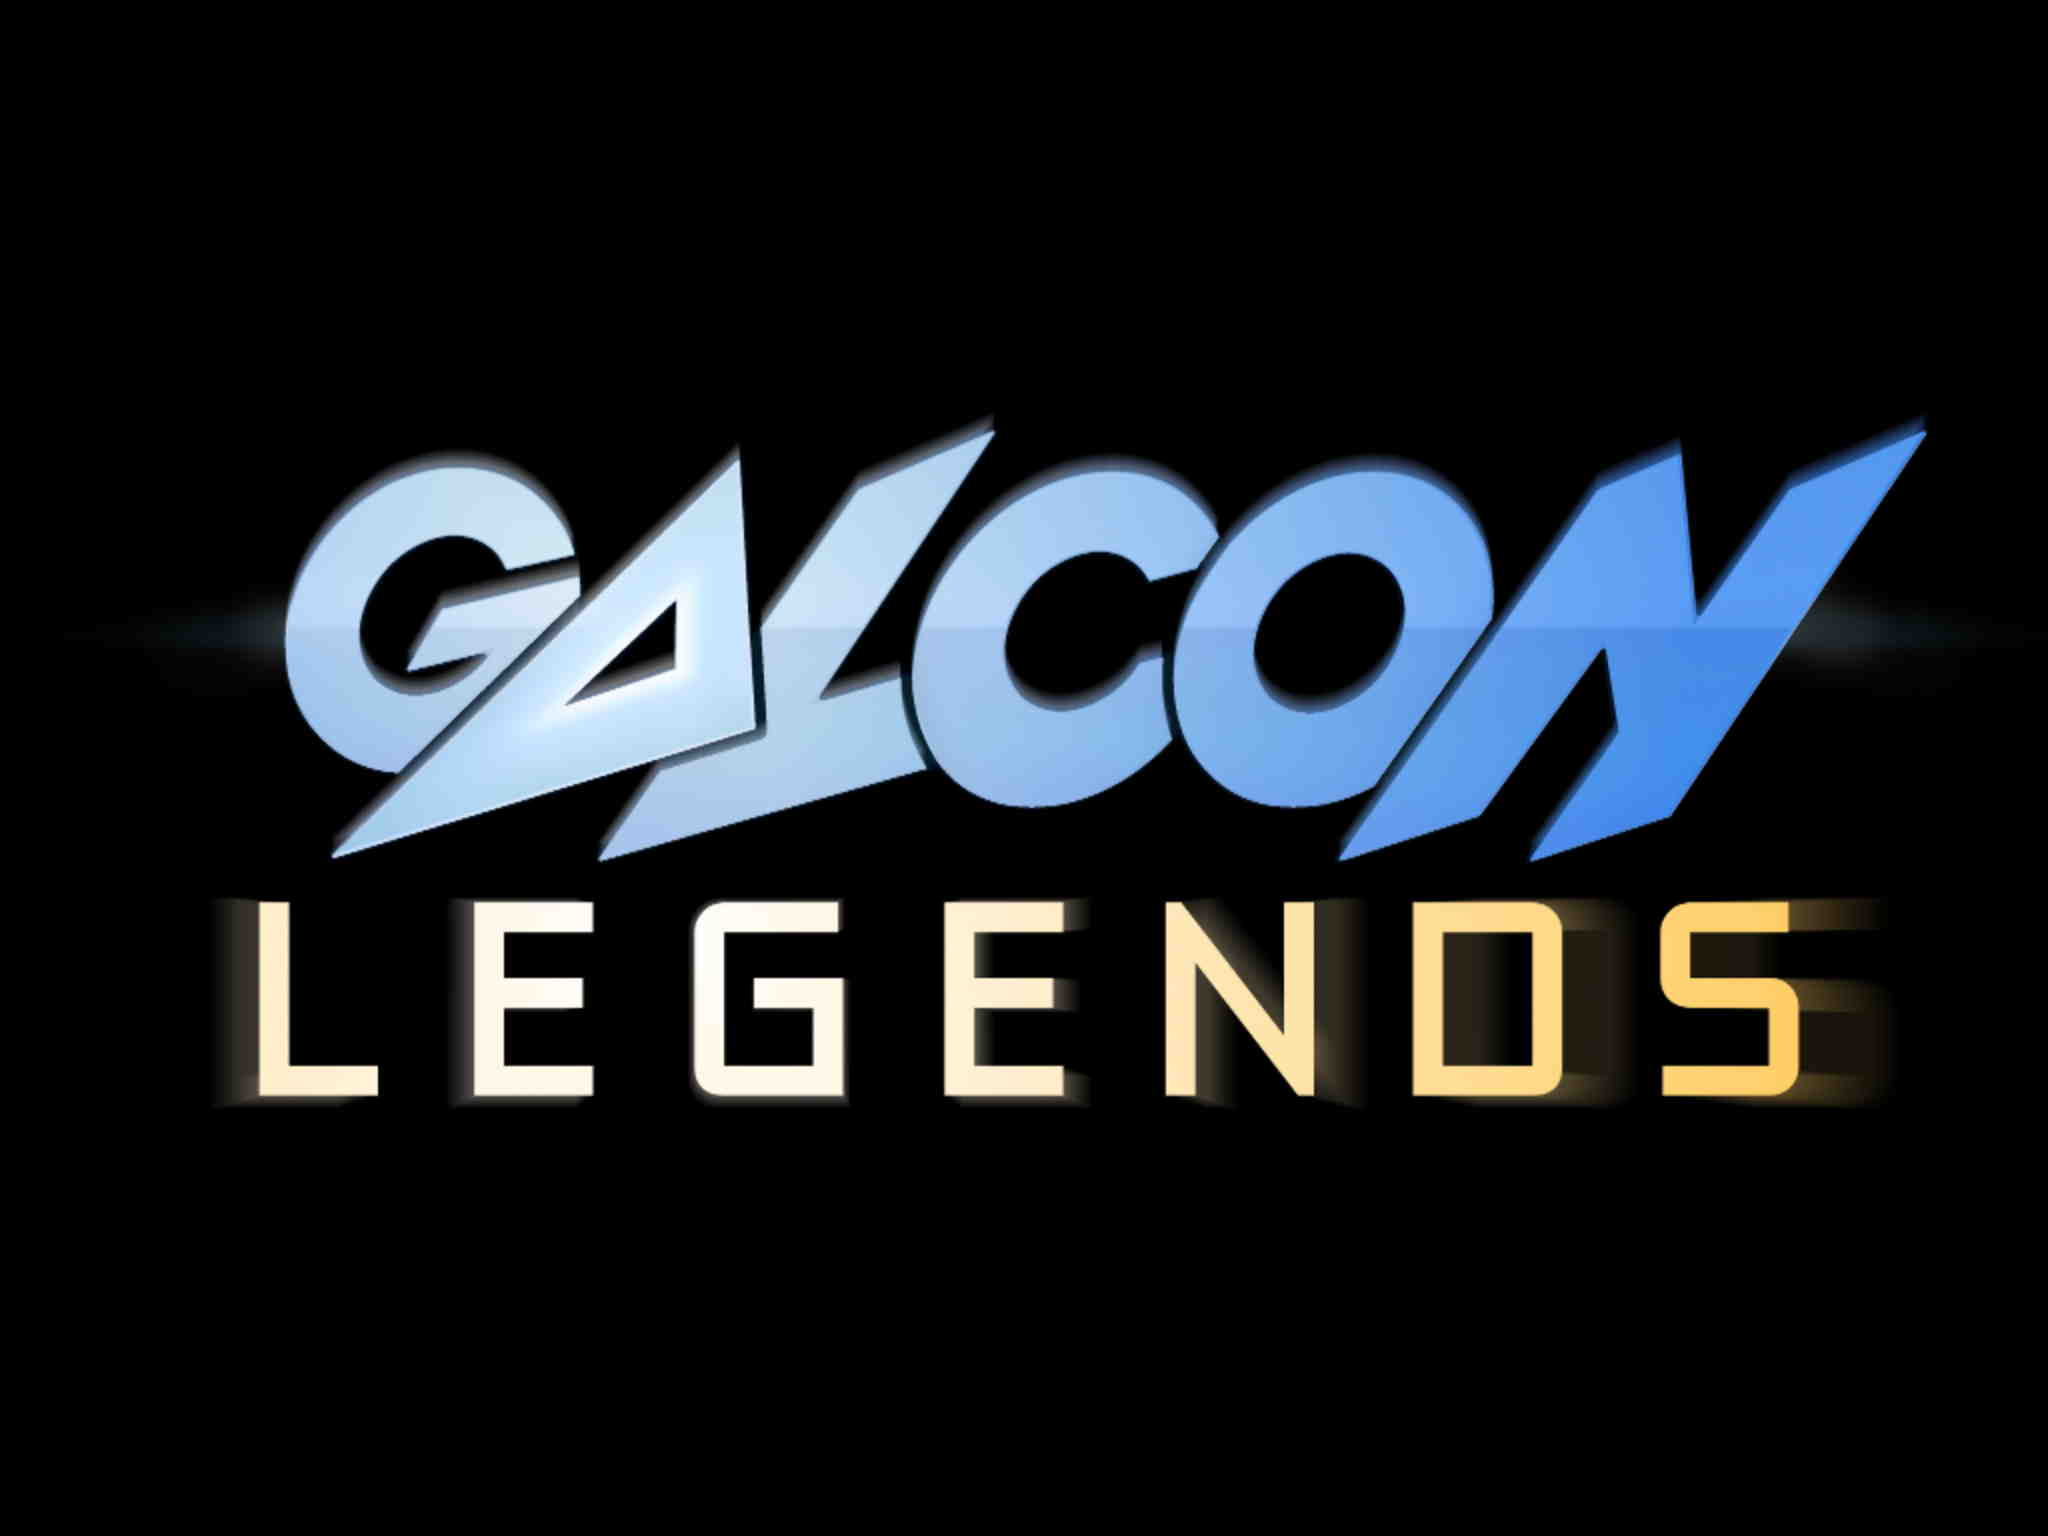 Galcon_Legends_01